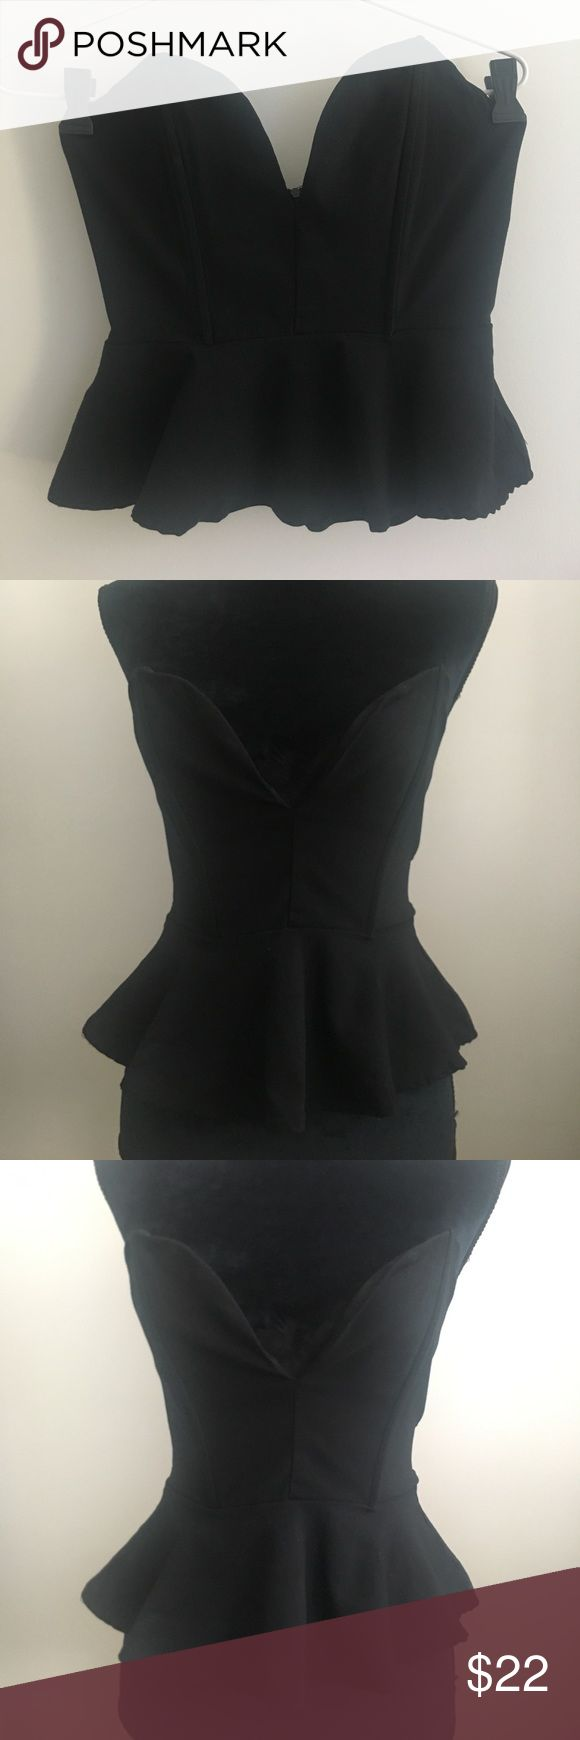 Black low v slit tube top Black tube top with low v neck slit. Zipper closure in back. Slightly cropped has peplum ruffle at bottom. Great condition. b sharp Tops Crop Tops